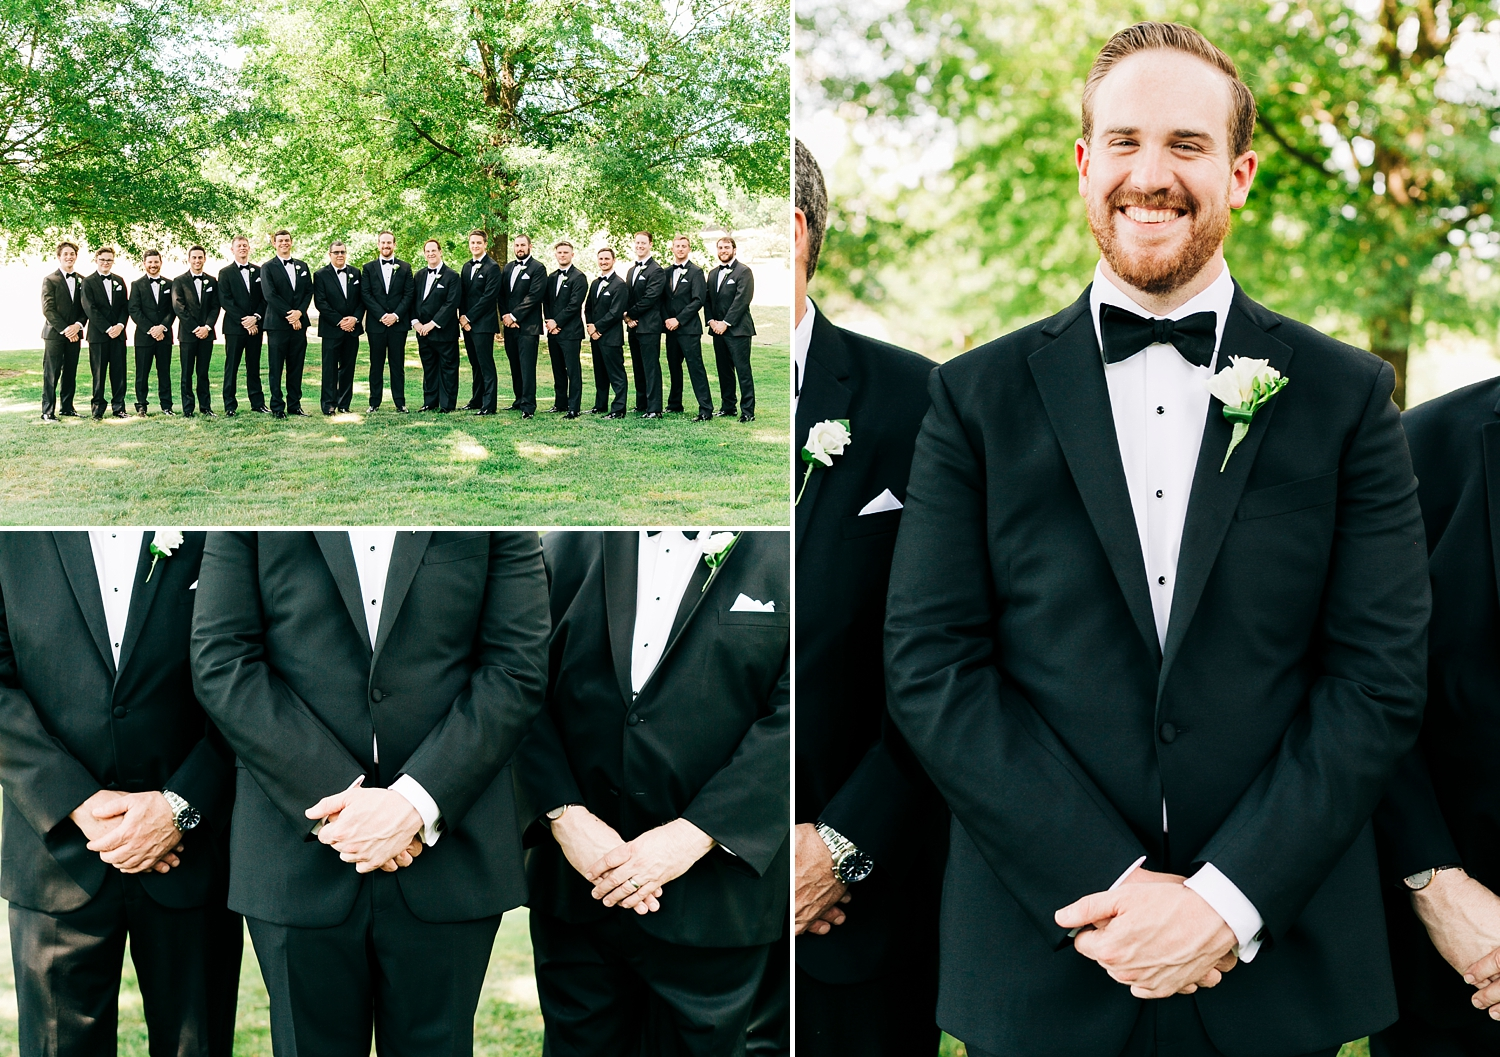 groom and his groomsmen on wedding day